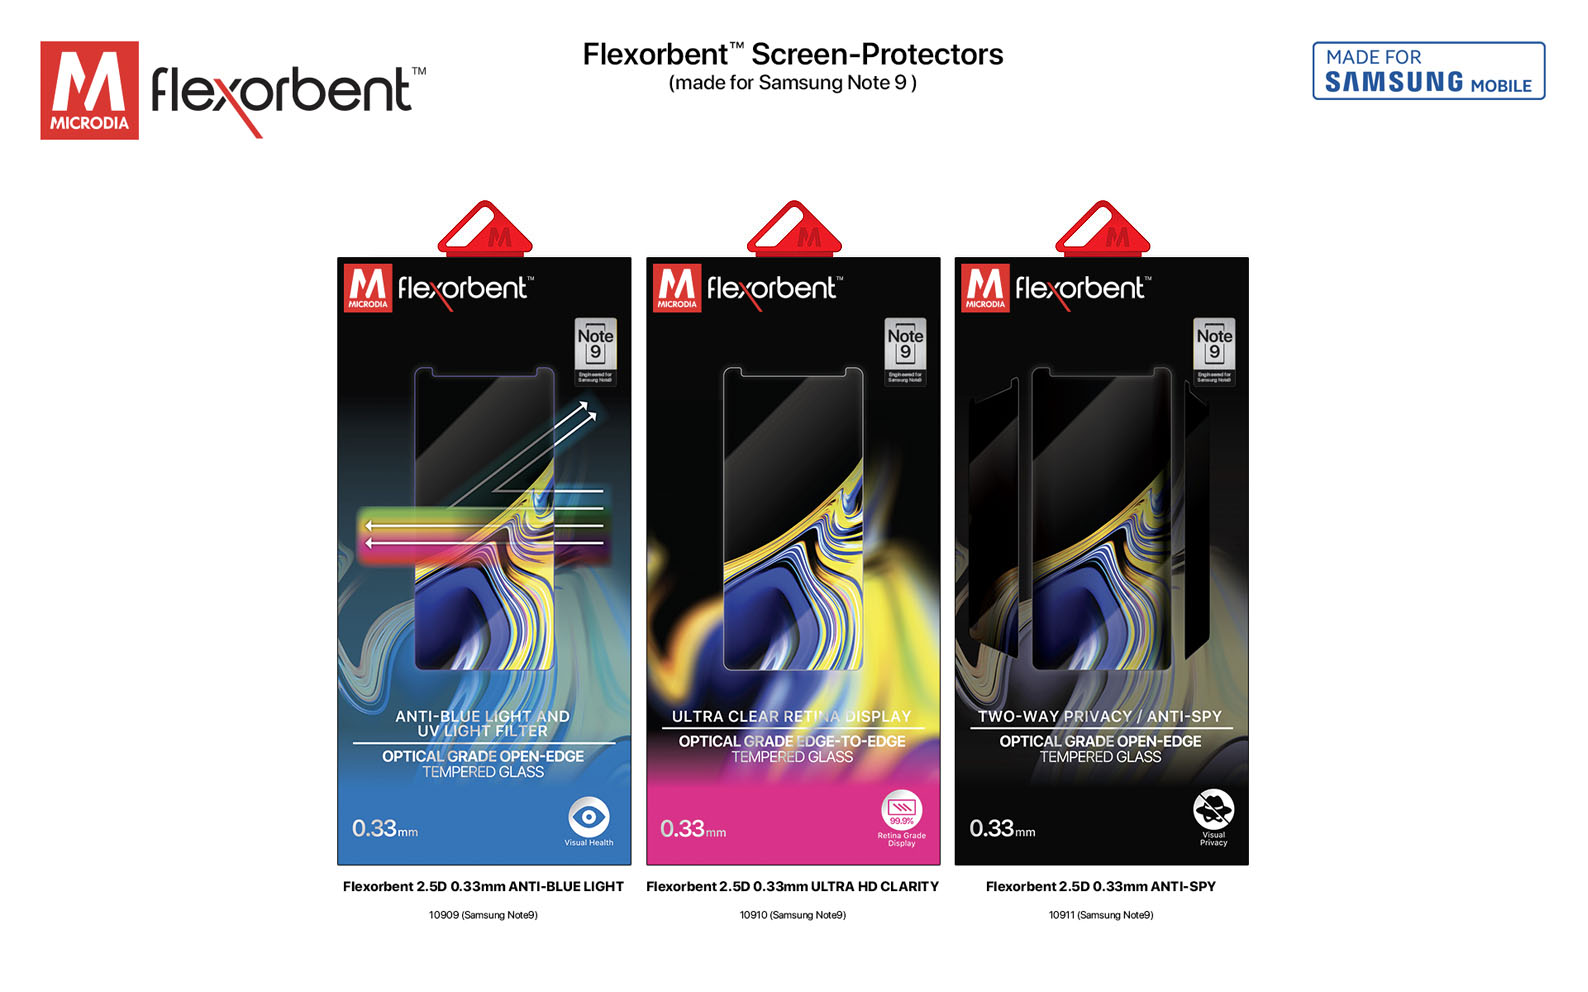 Flexorbent Screen-Protectors2